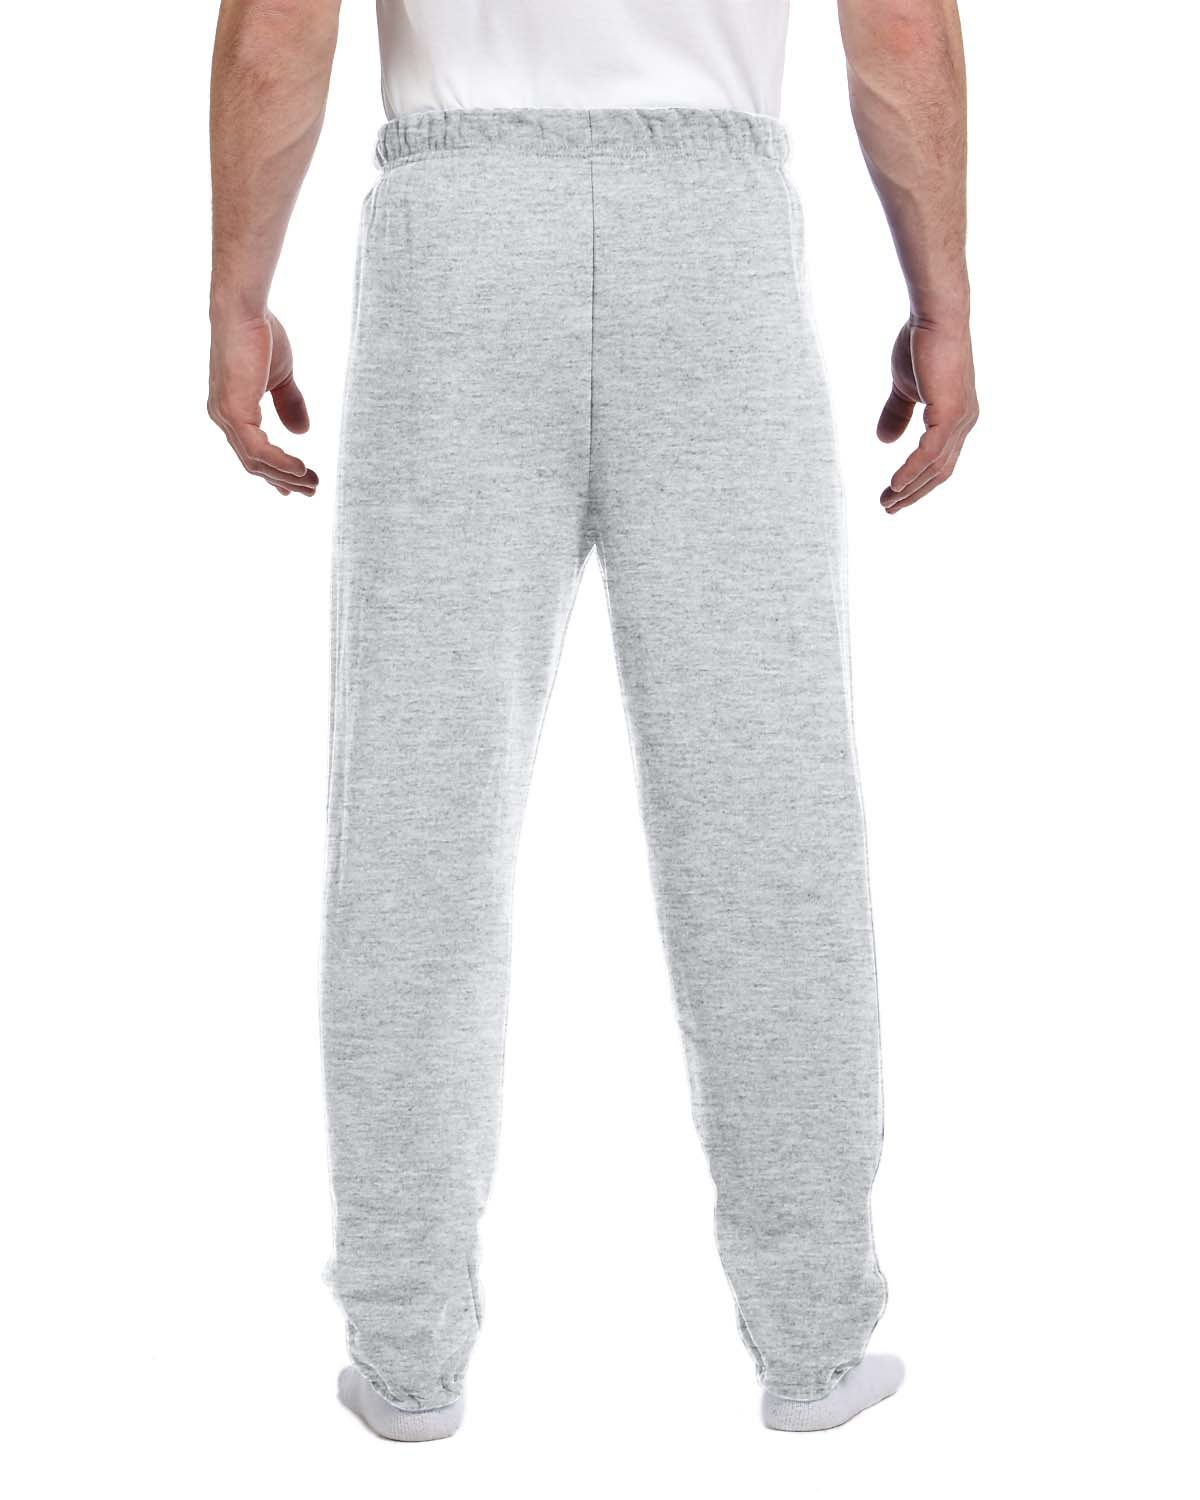 'Jerzees 973 Adult NuBlend Fleece Sweatpants'